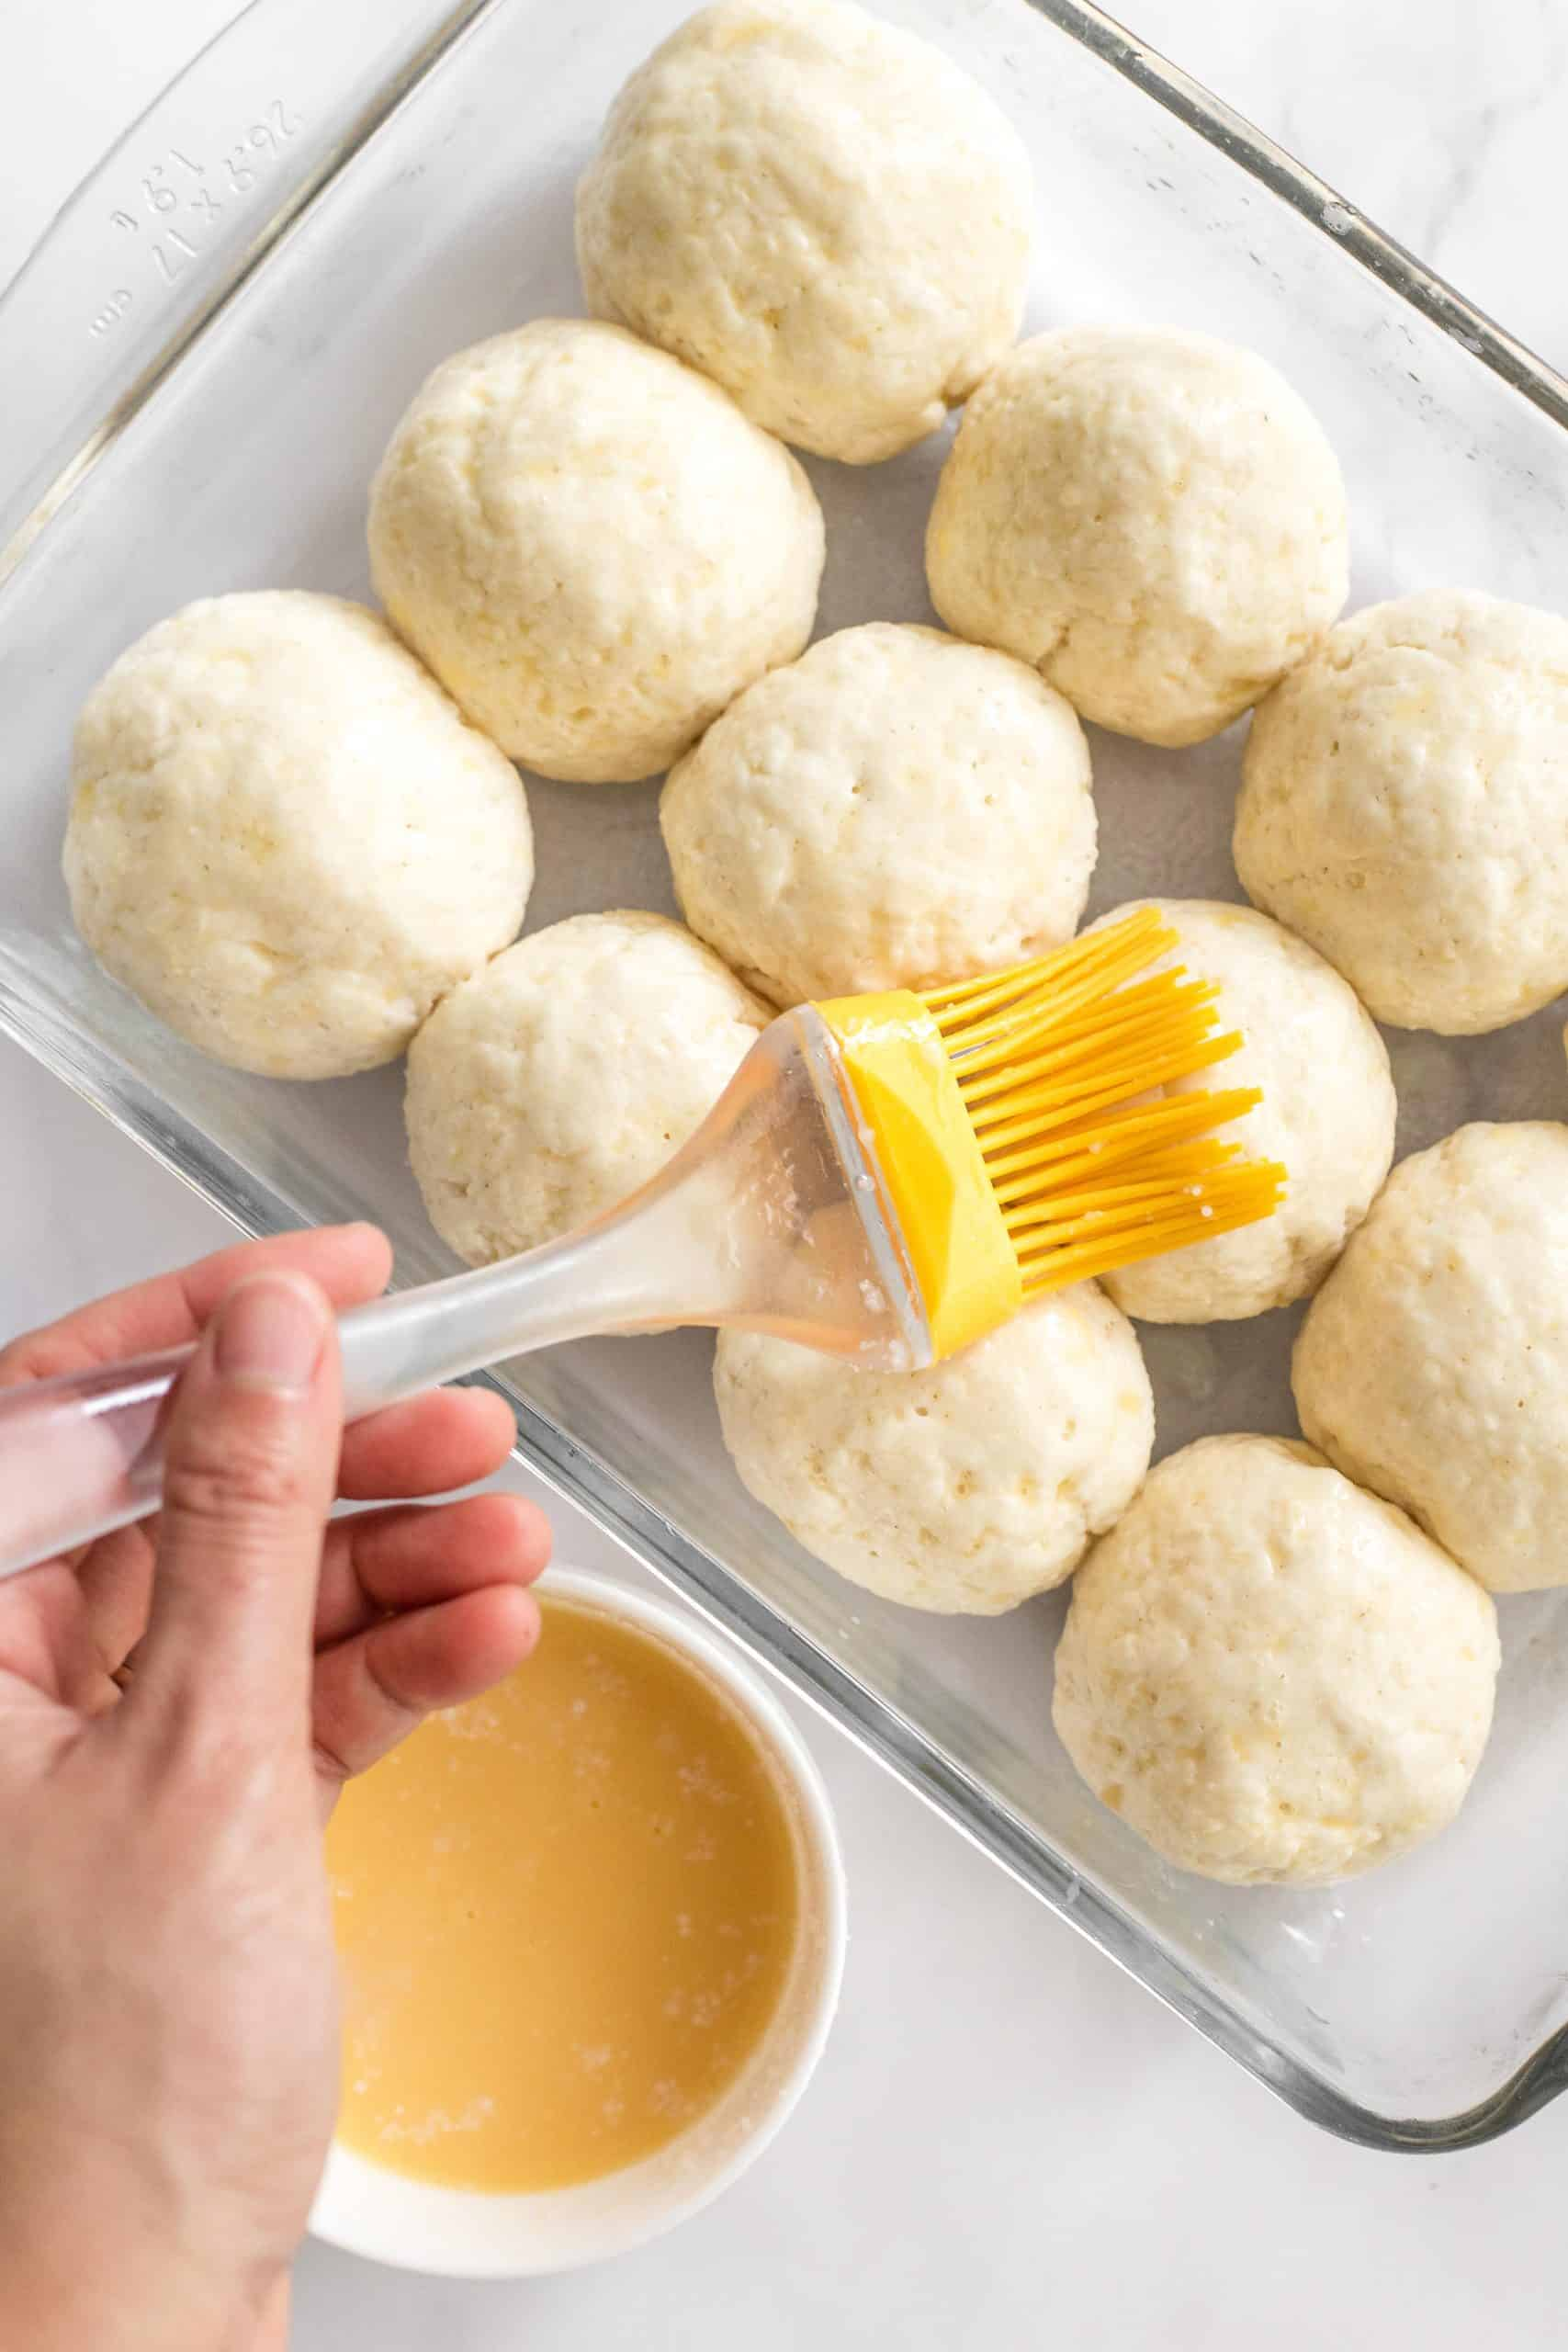 Hand brushing unbaked bread rolls with egg wash.